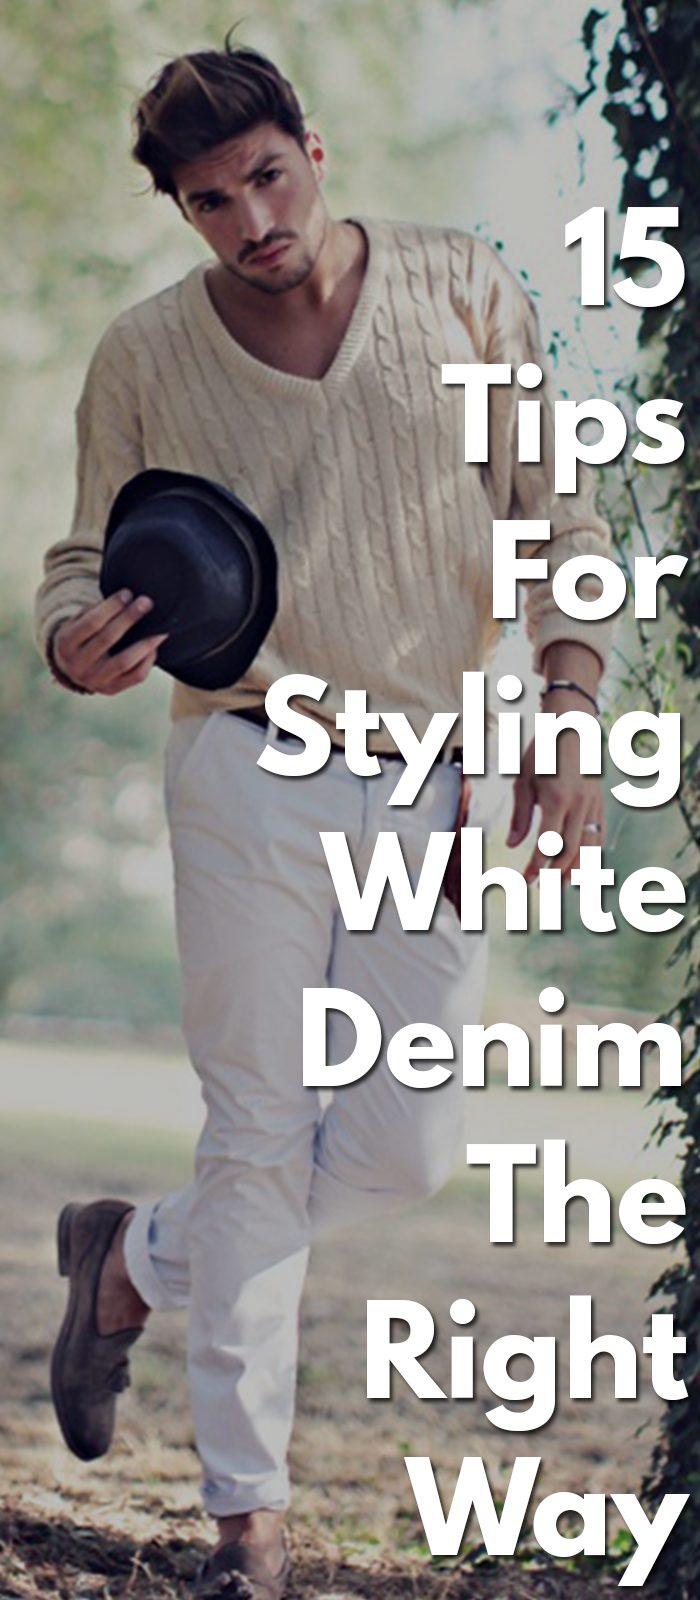 15-Tips-For-Styling-White-Denim-The-Right-Way.